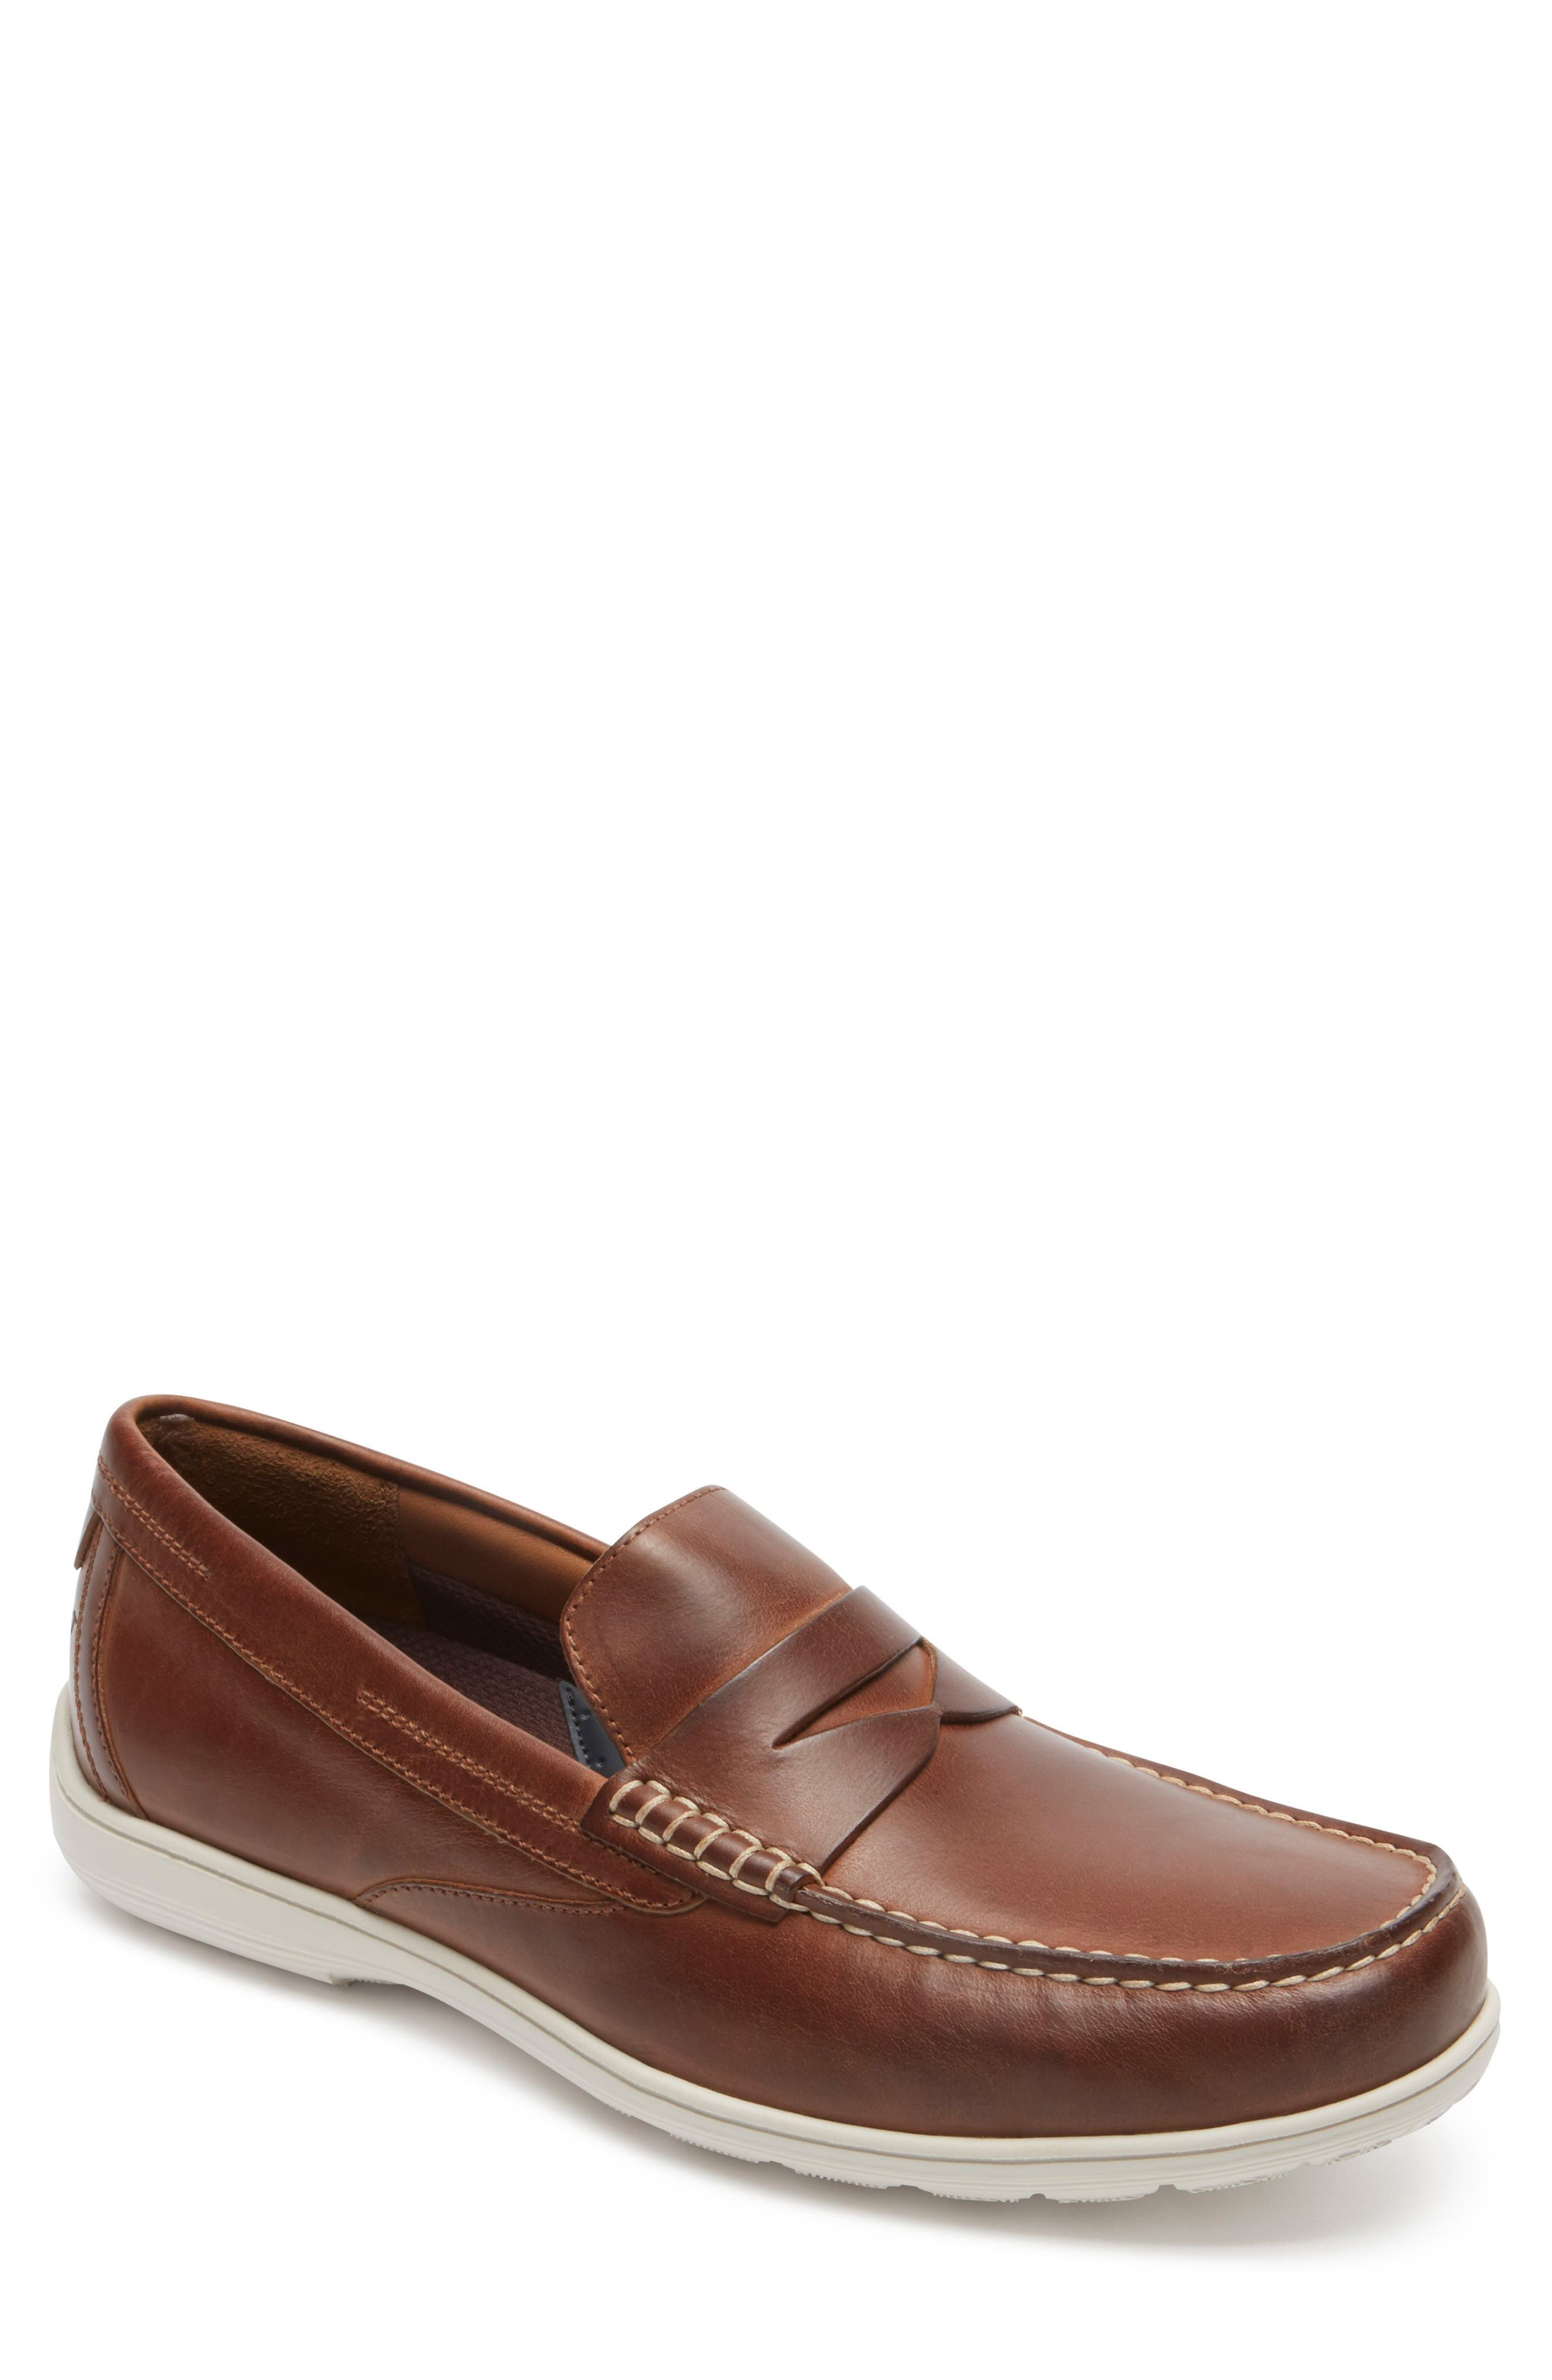 Total Motion Penny Loafer,                             Main thumbnail 1, color,